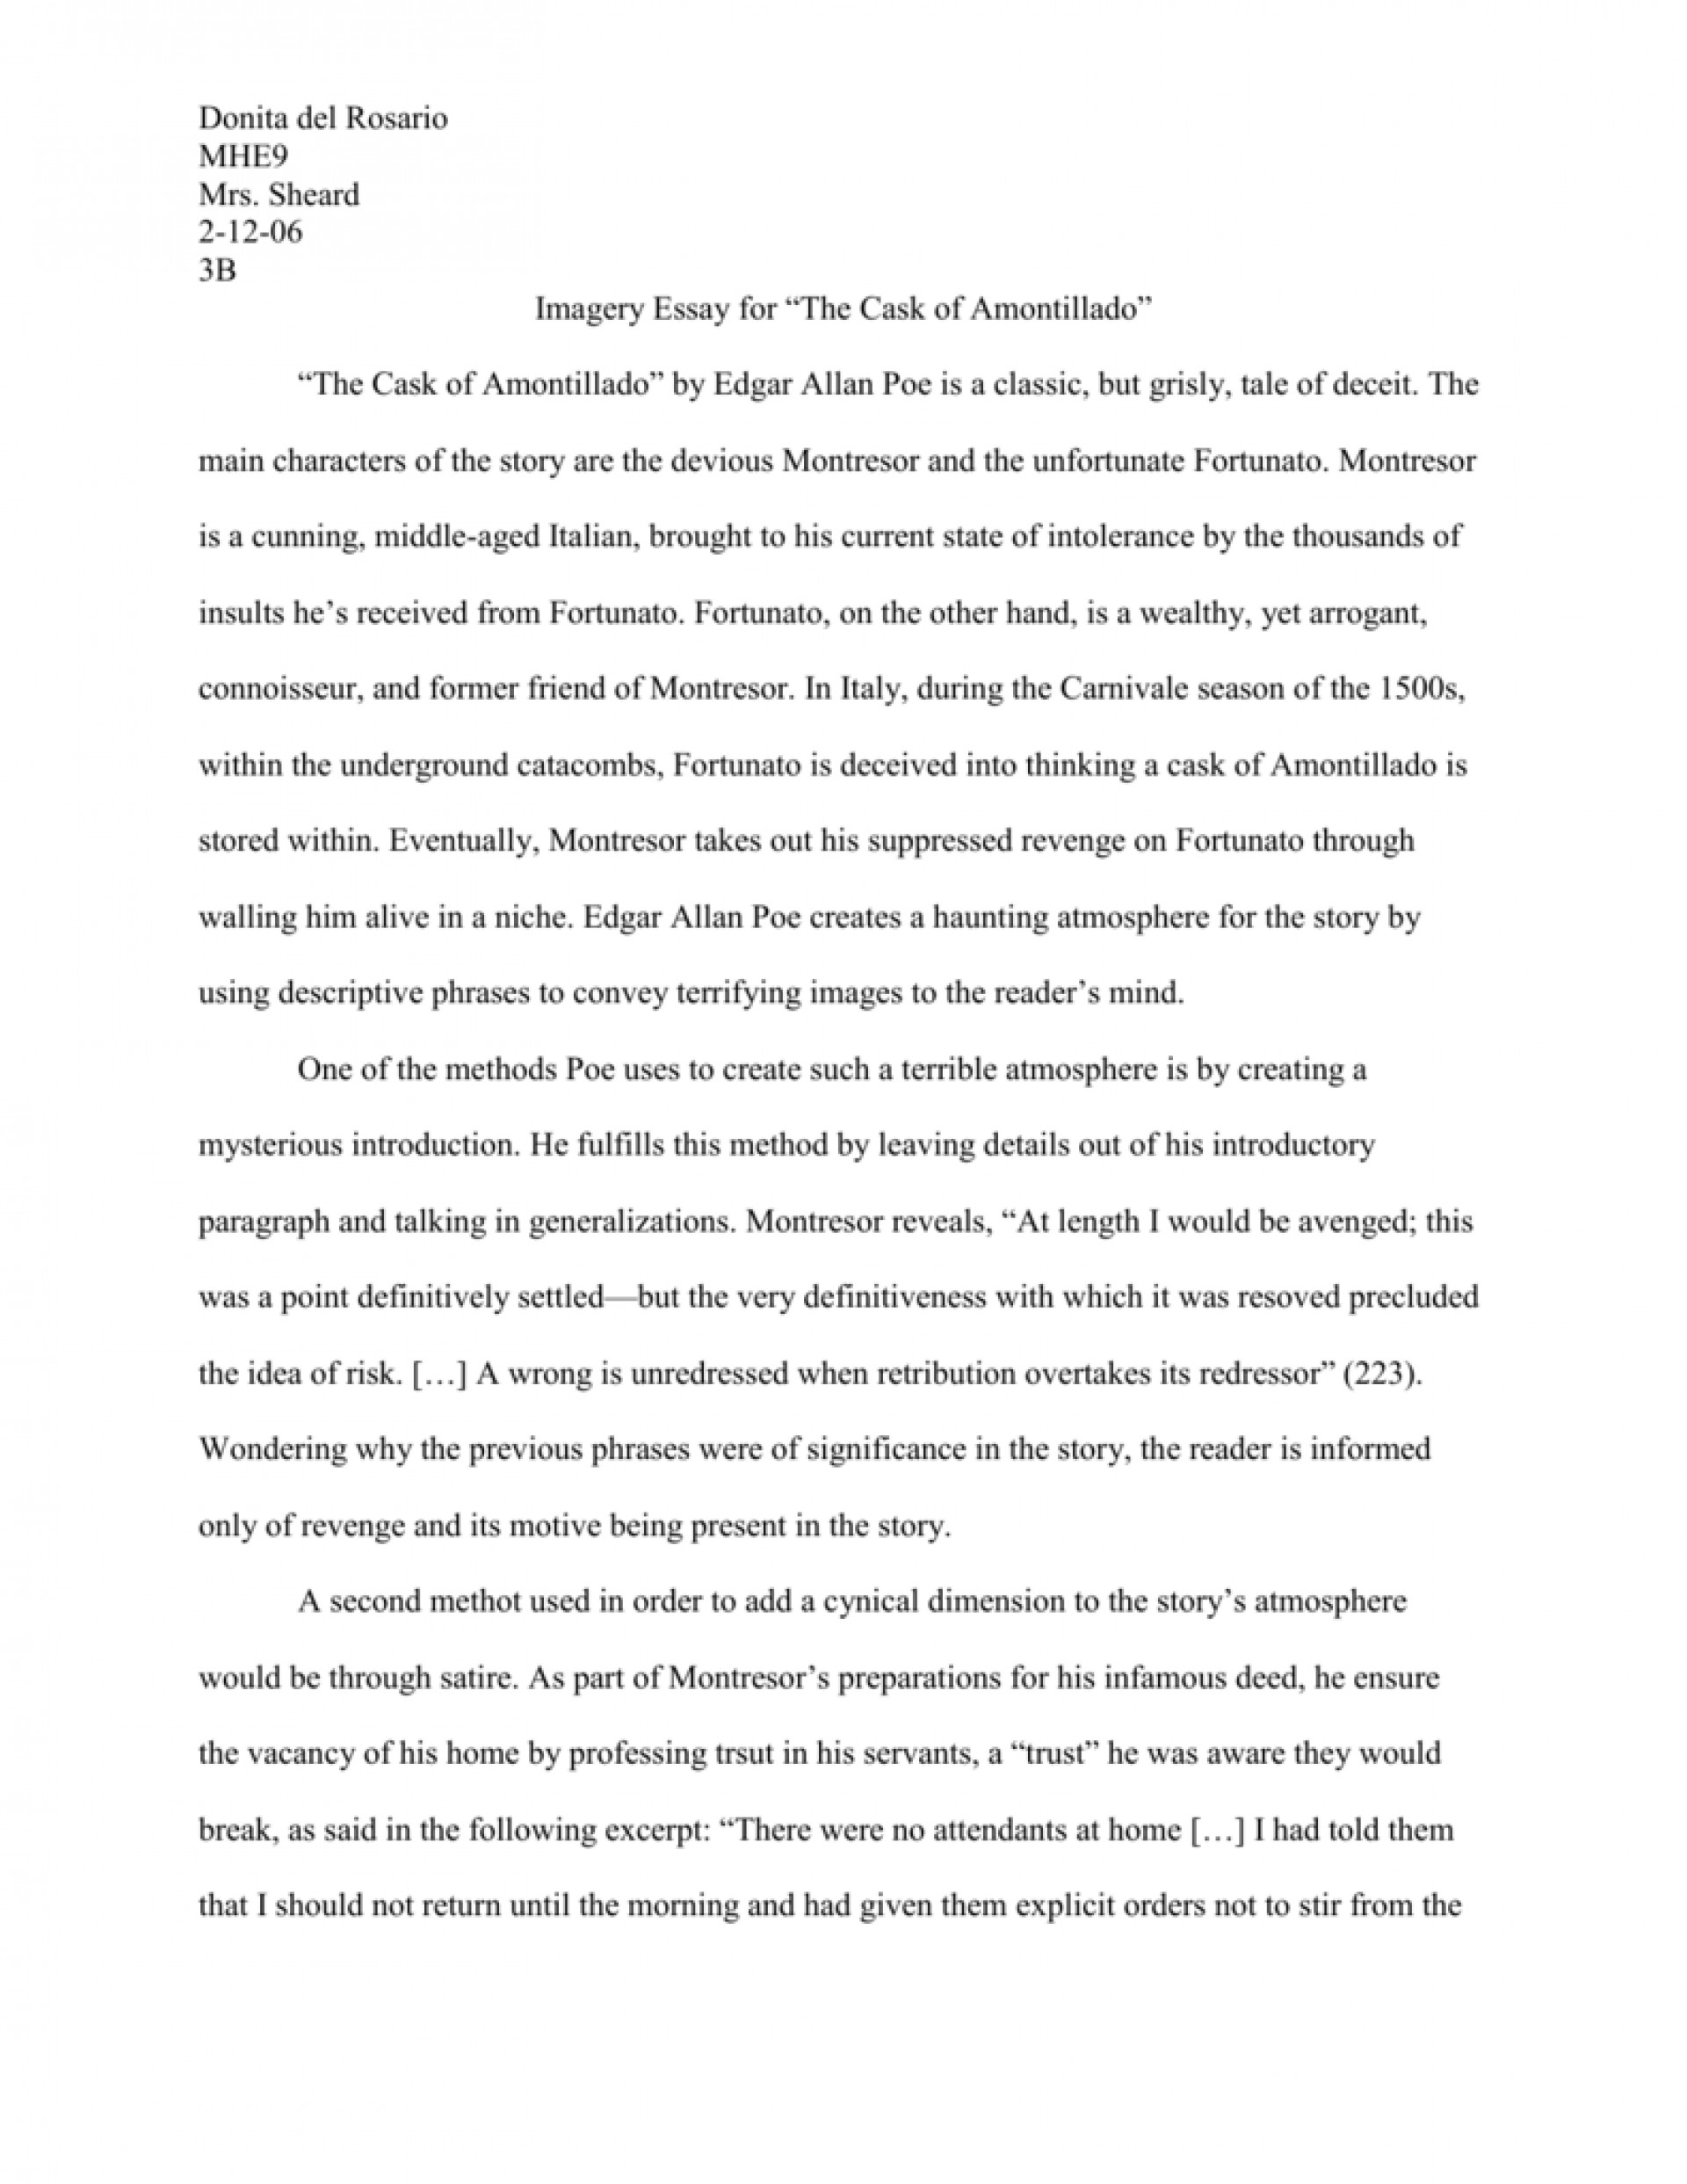 002 Essay Example 008018307 1 The Cask Of Unforgettable Amontillado Outline Prompts Topics 1920